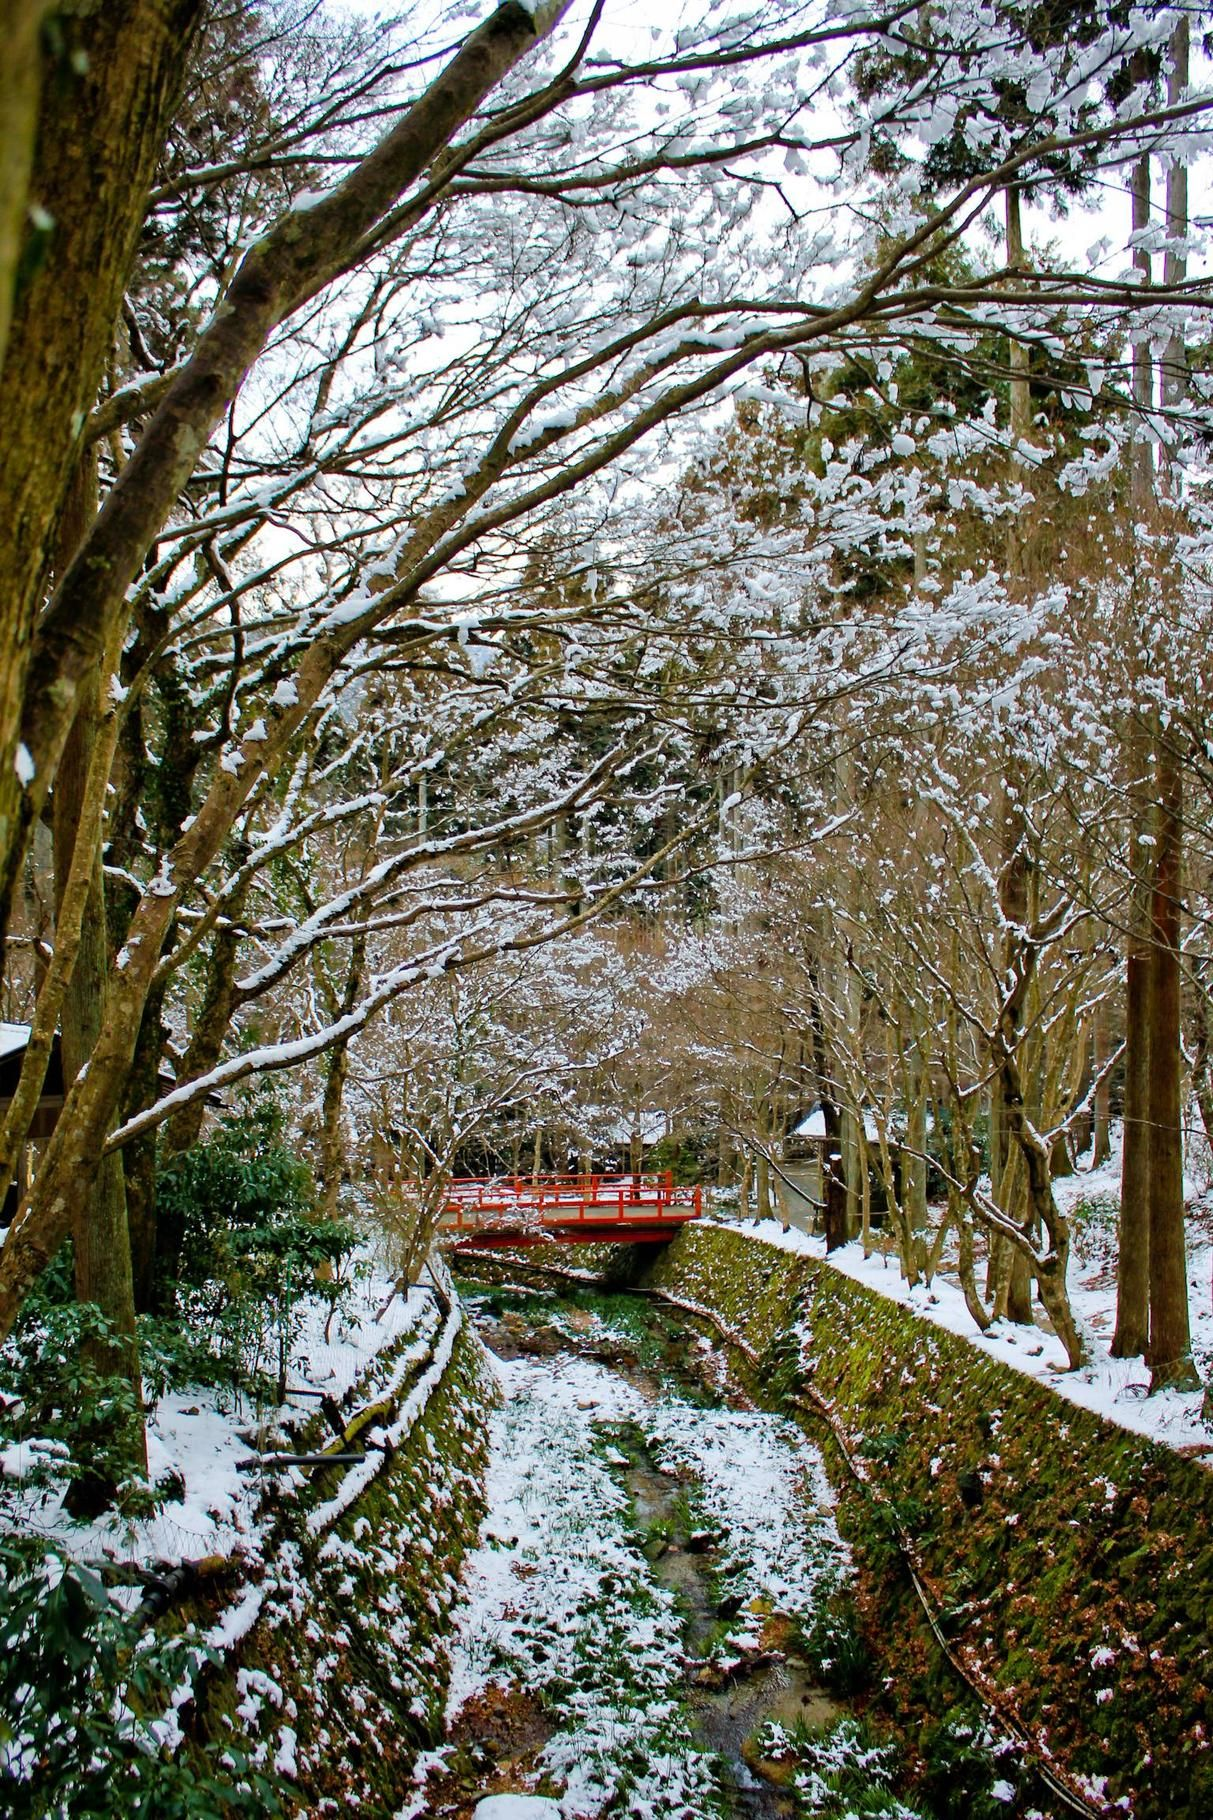 ohara village north of kyoto winter snow shuhekien garden of